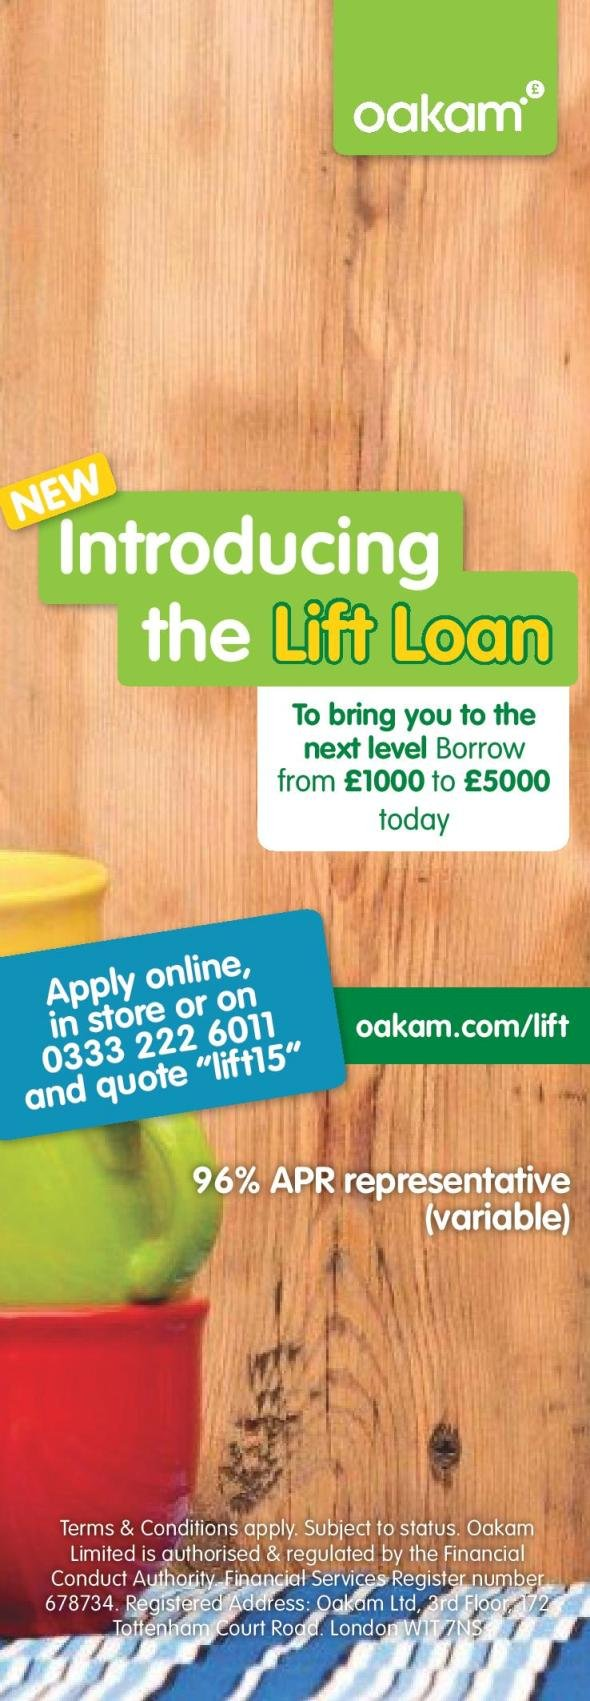 Oakam - lift loan